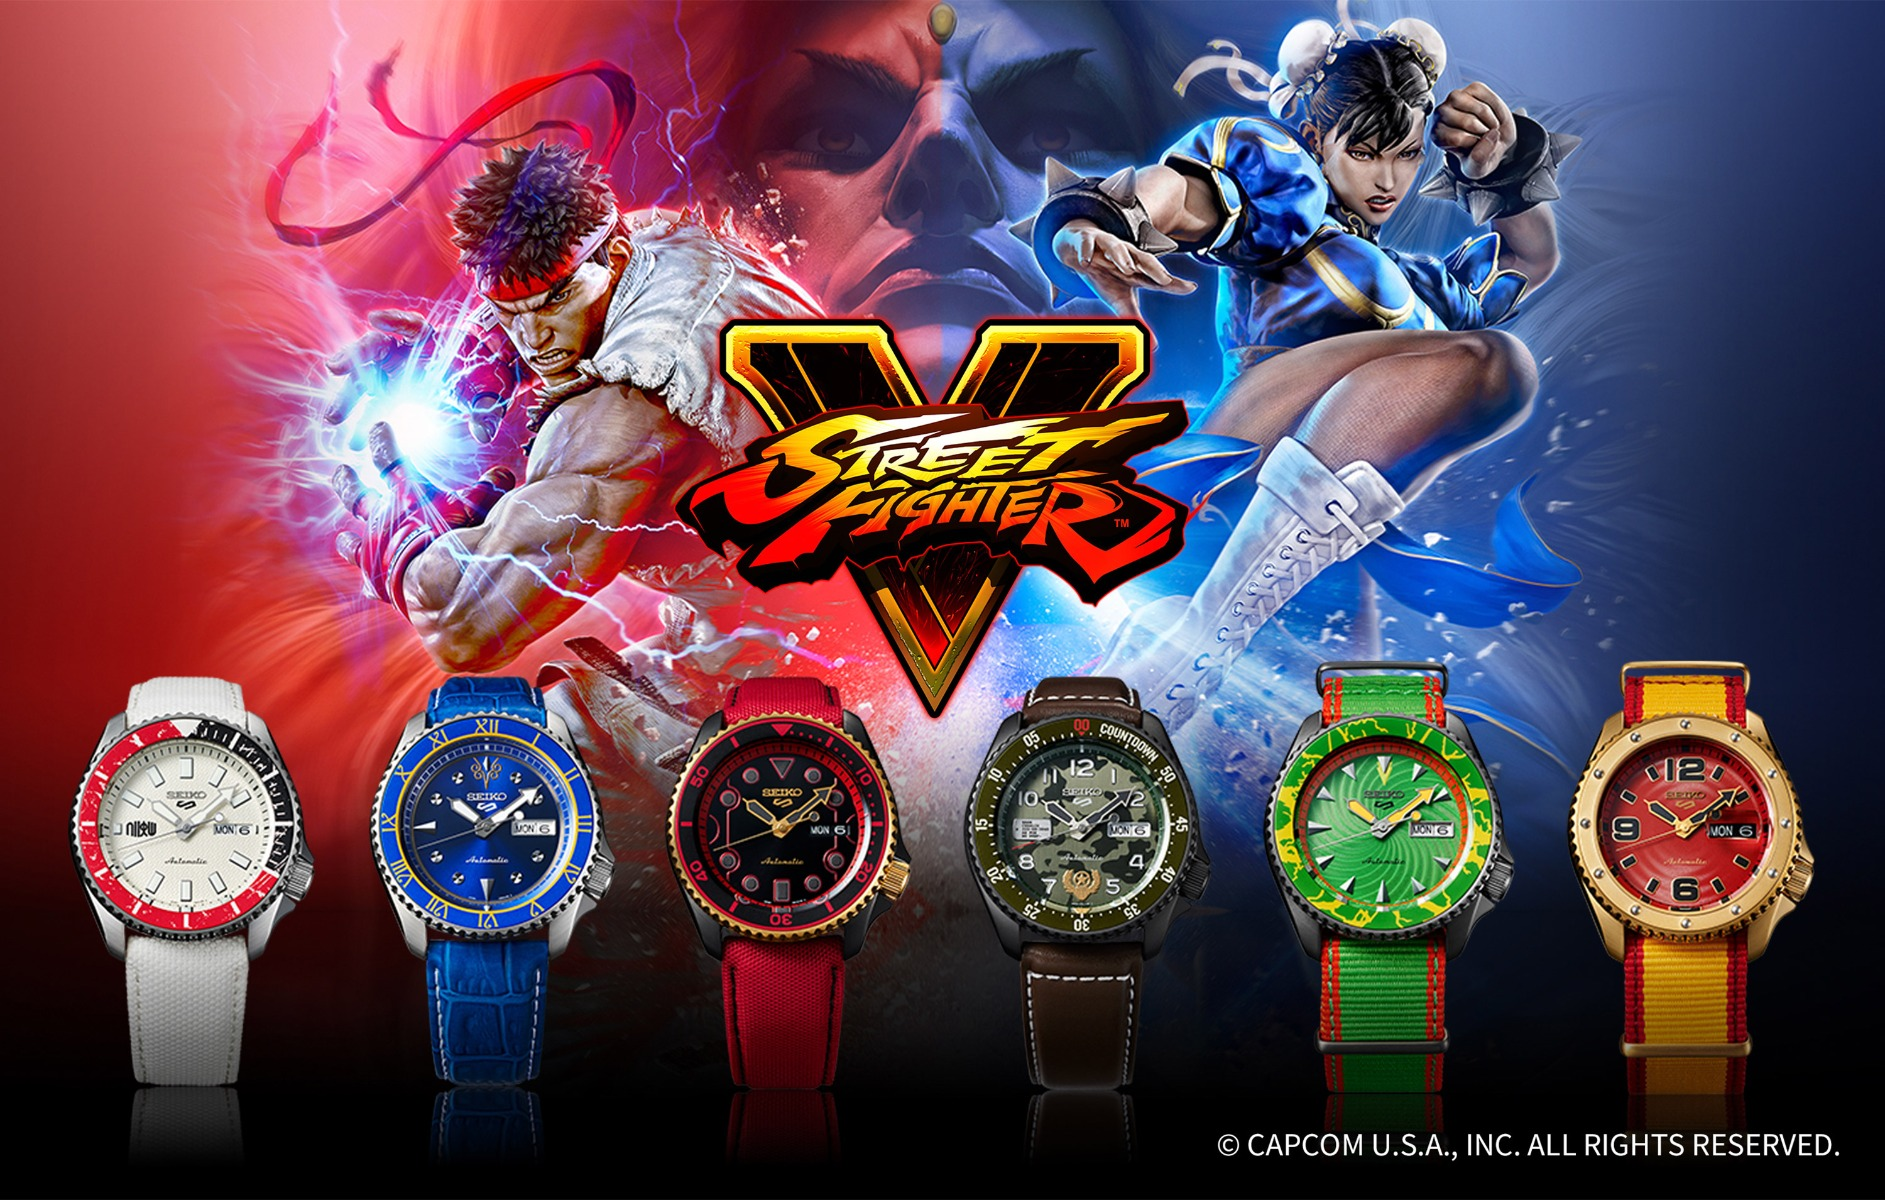 Seiko Street Fighter Limited Edition Series